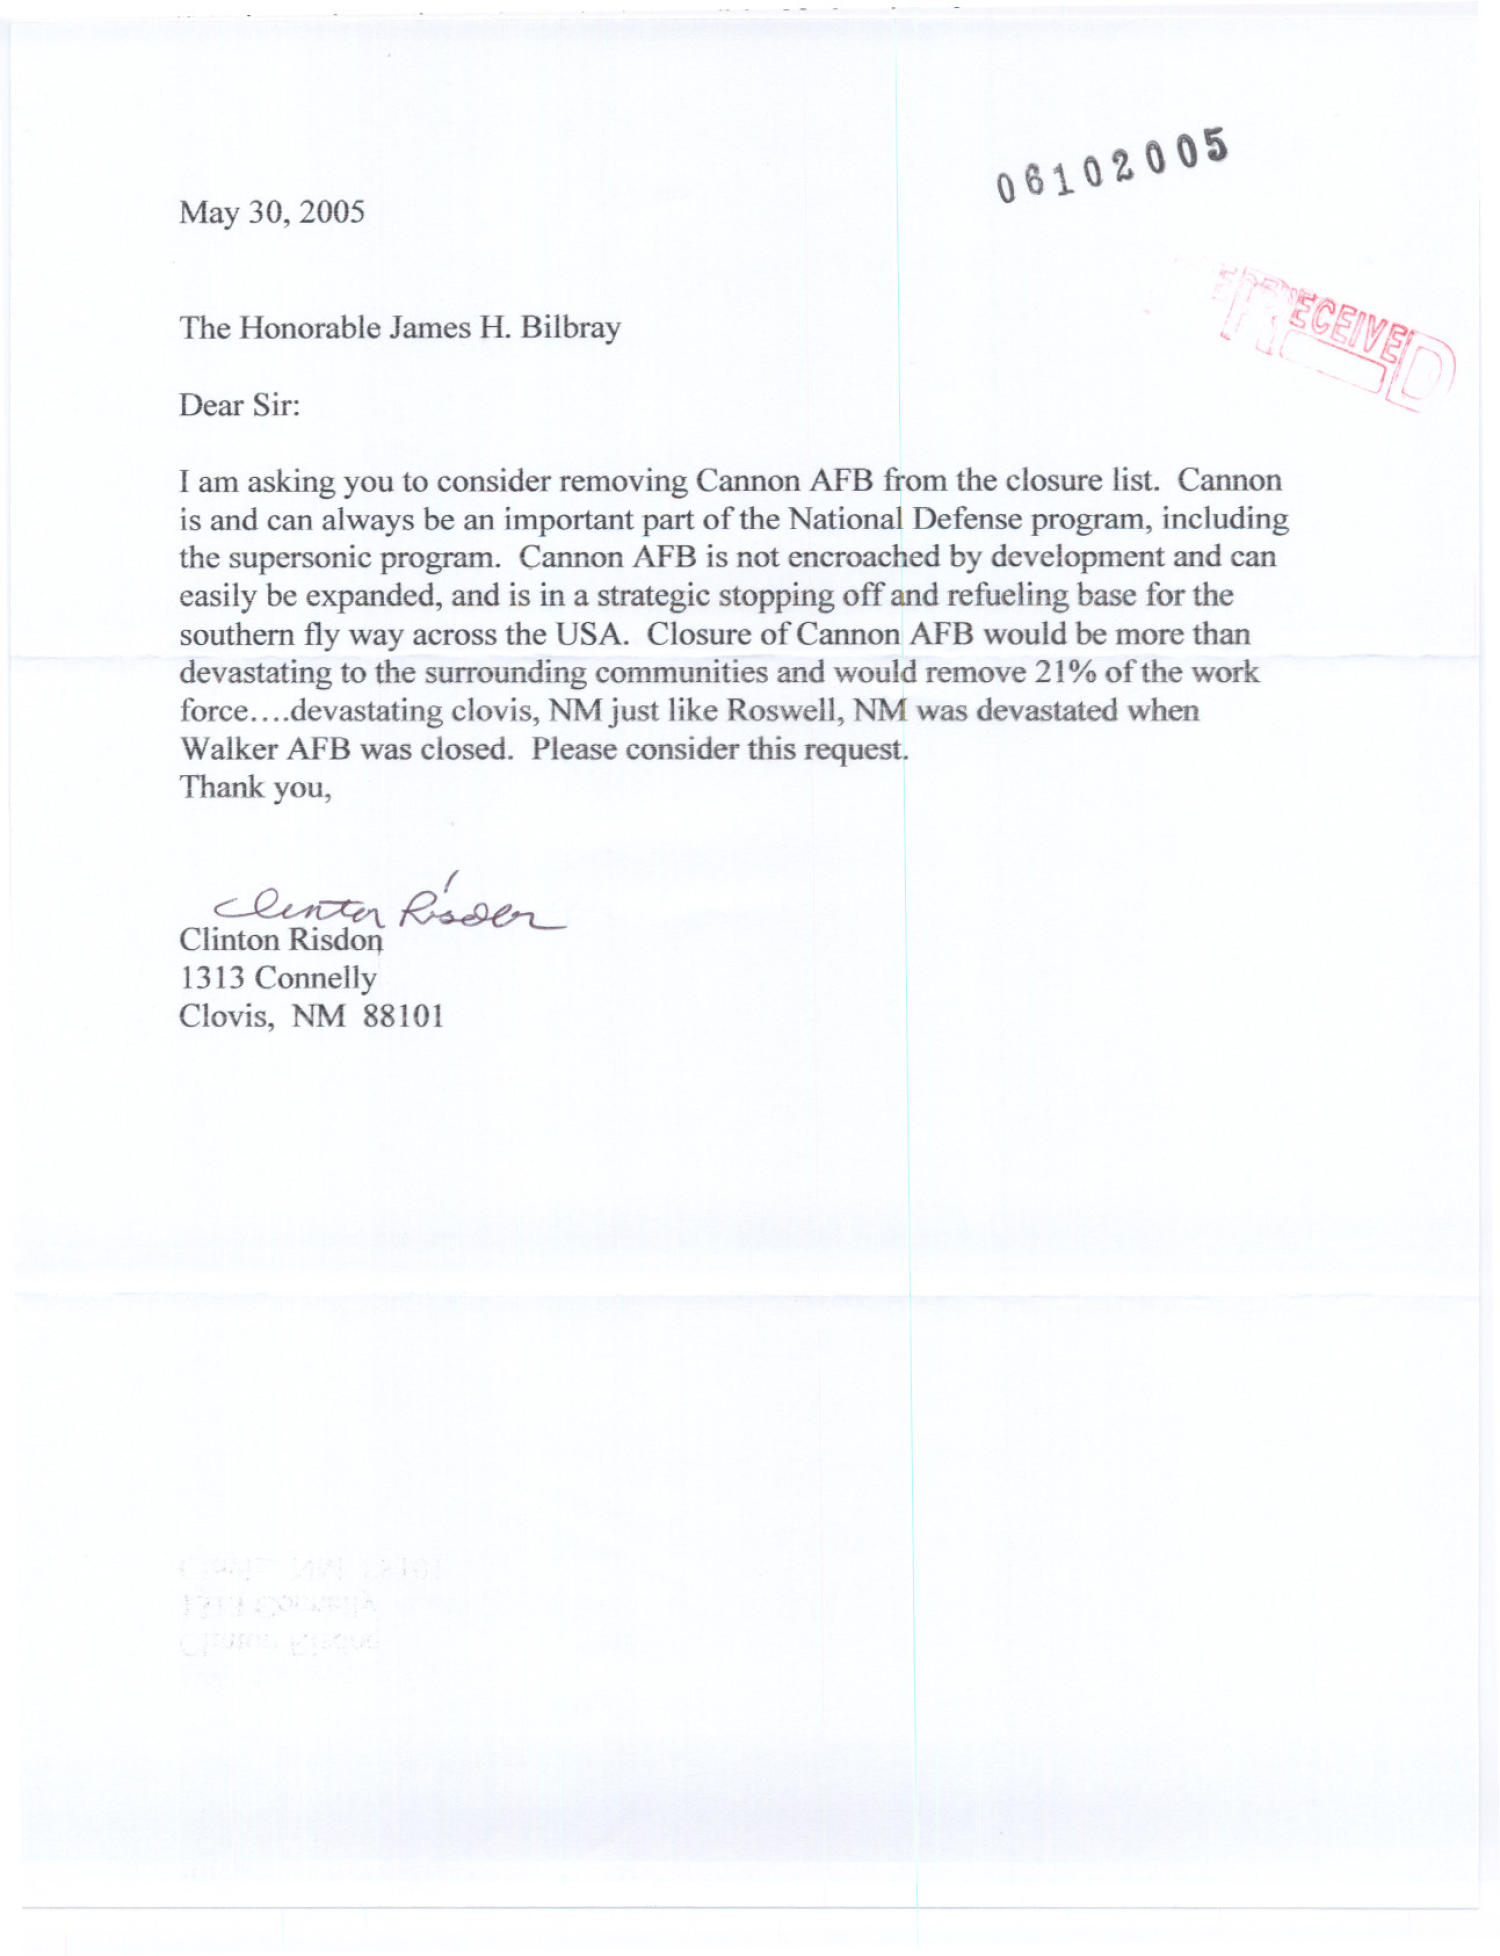 Cannon Air Force Base - Letter - Clinton Risdon                                                                                                      [Sequence #]: 4 of 18